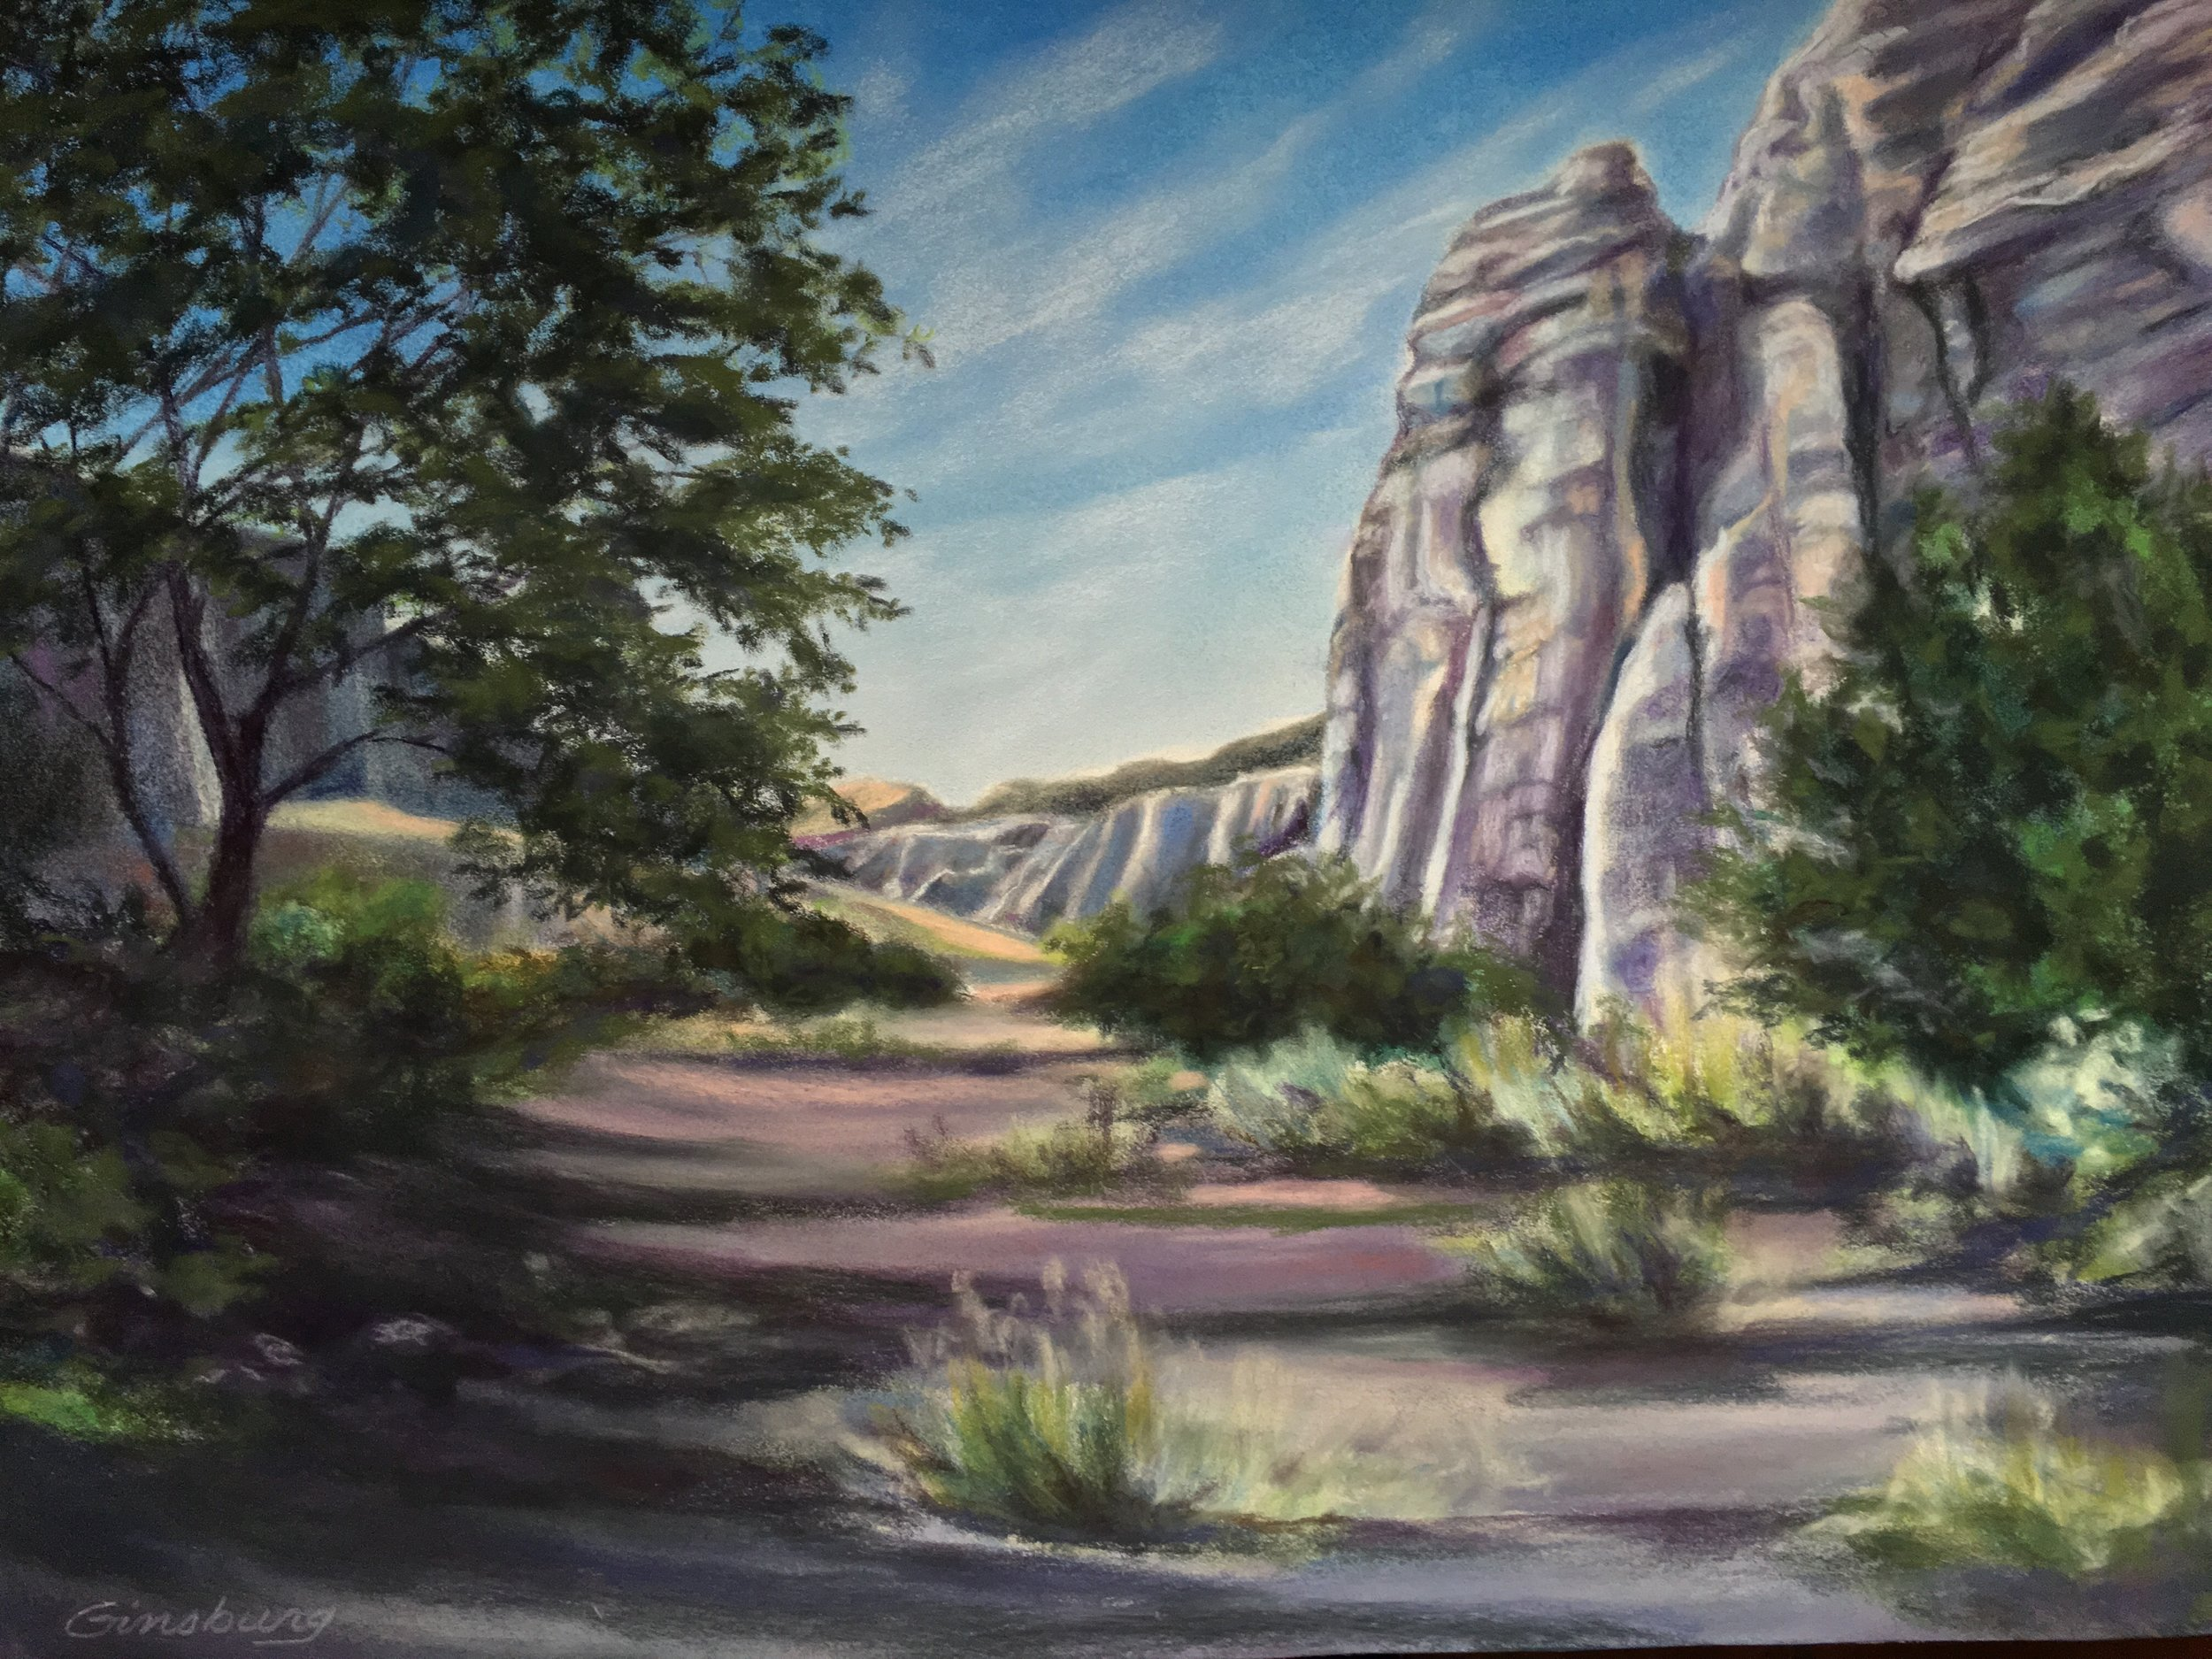 """THE WHITE PLACE"", GHOST RANCH, New Mexico  PanPastel® and traditional pastel Cheri GInsburg ©"